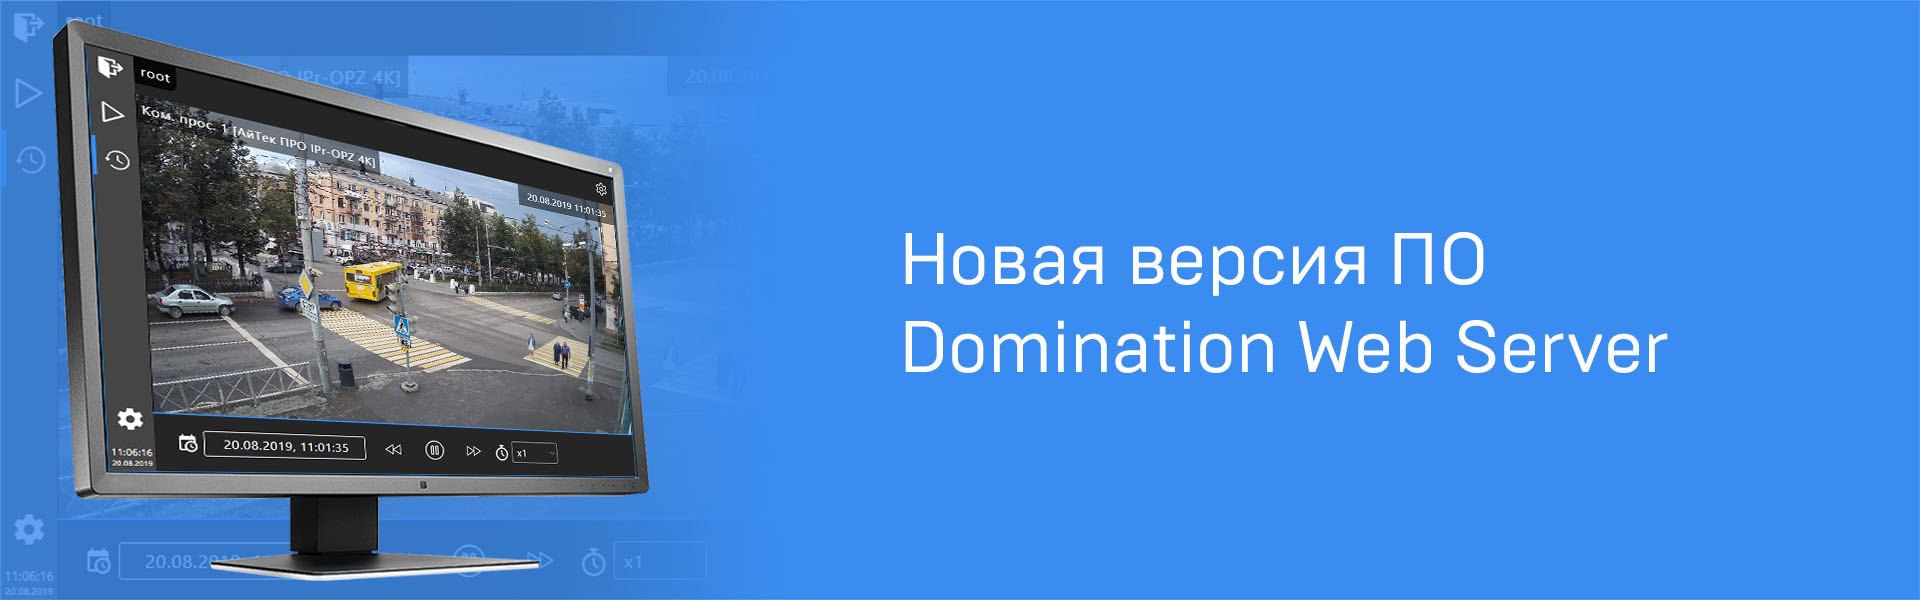 Новая версия ПО Domination Web Server.jpg